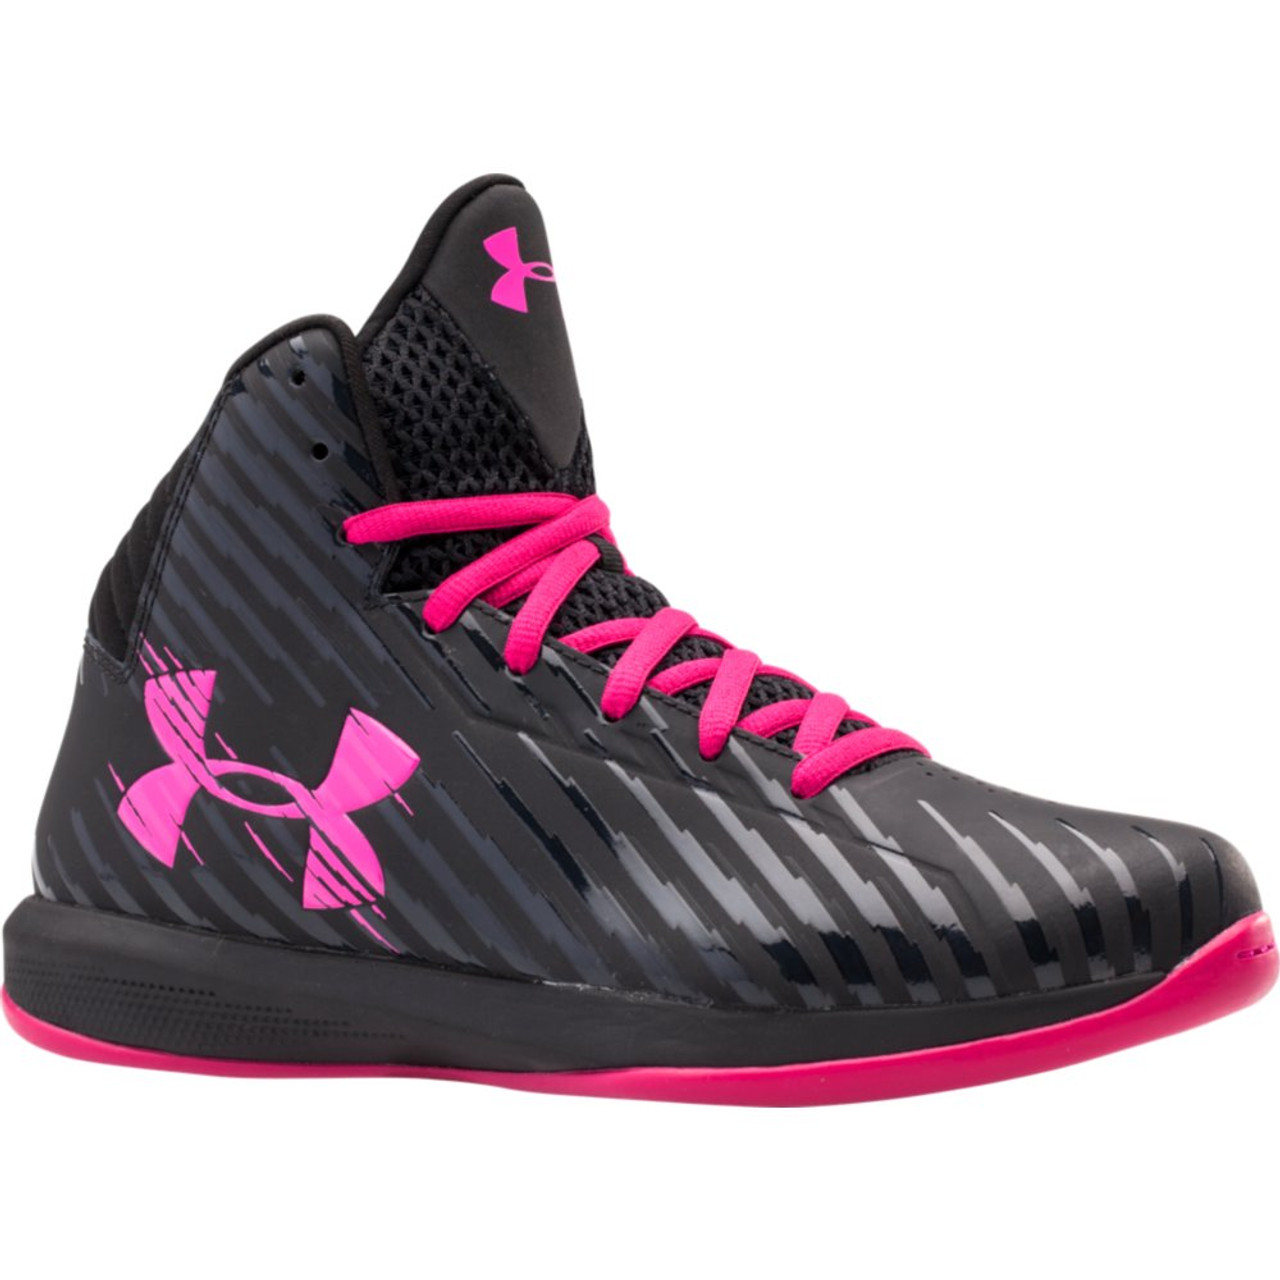 a3b057ef1ba Women s Under Armour Jet Basketball Shoes - Sieverts Sporting Goods